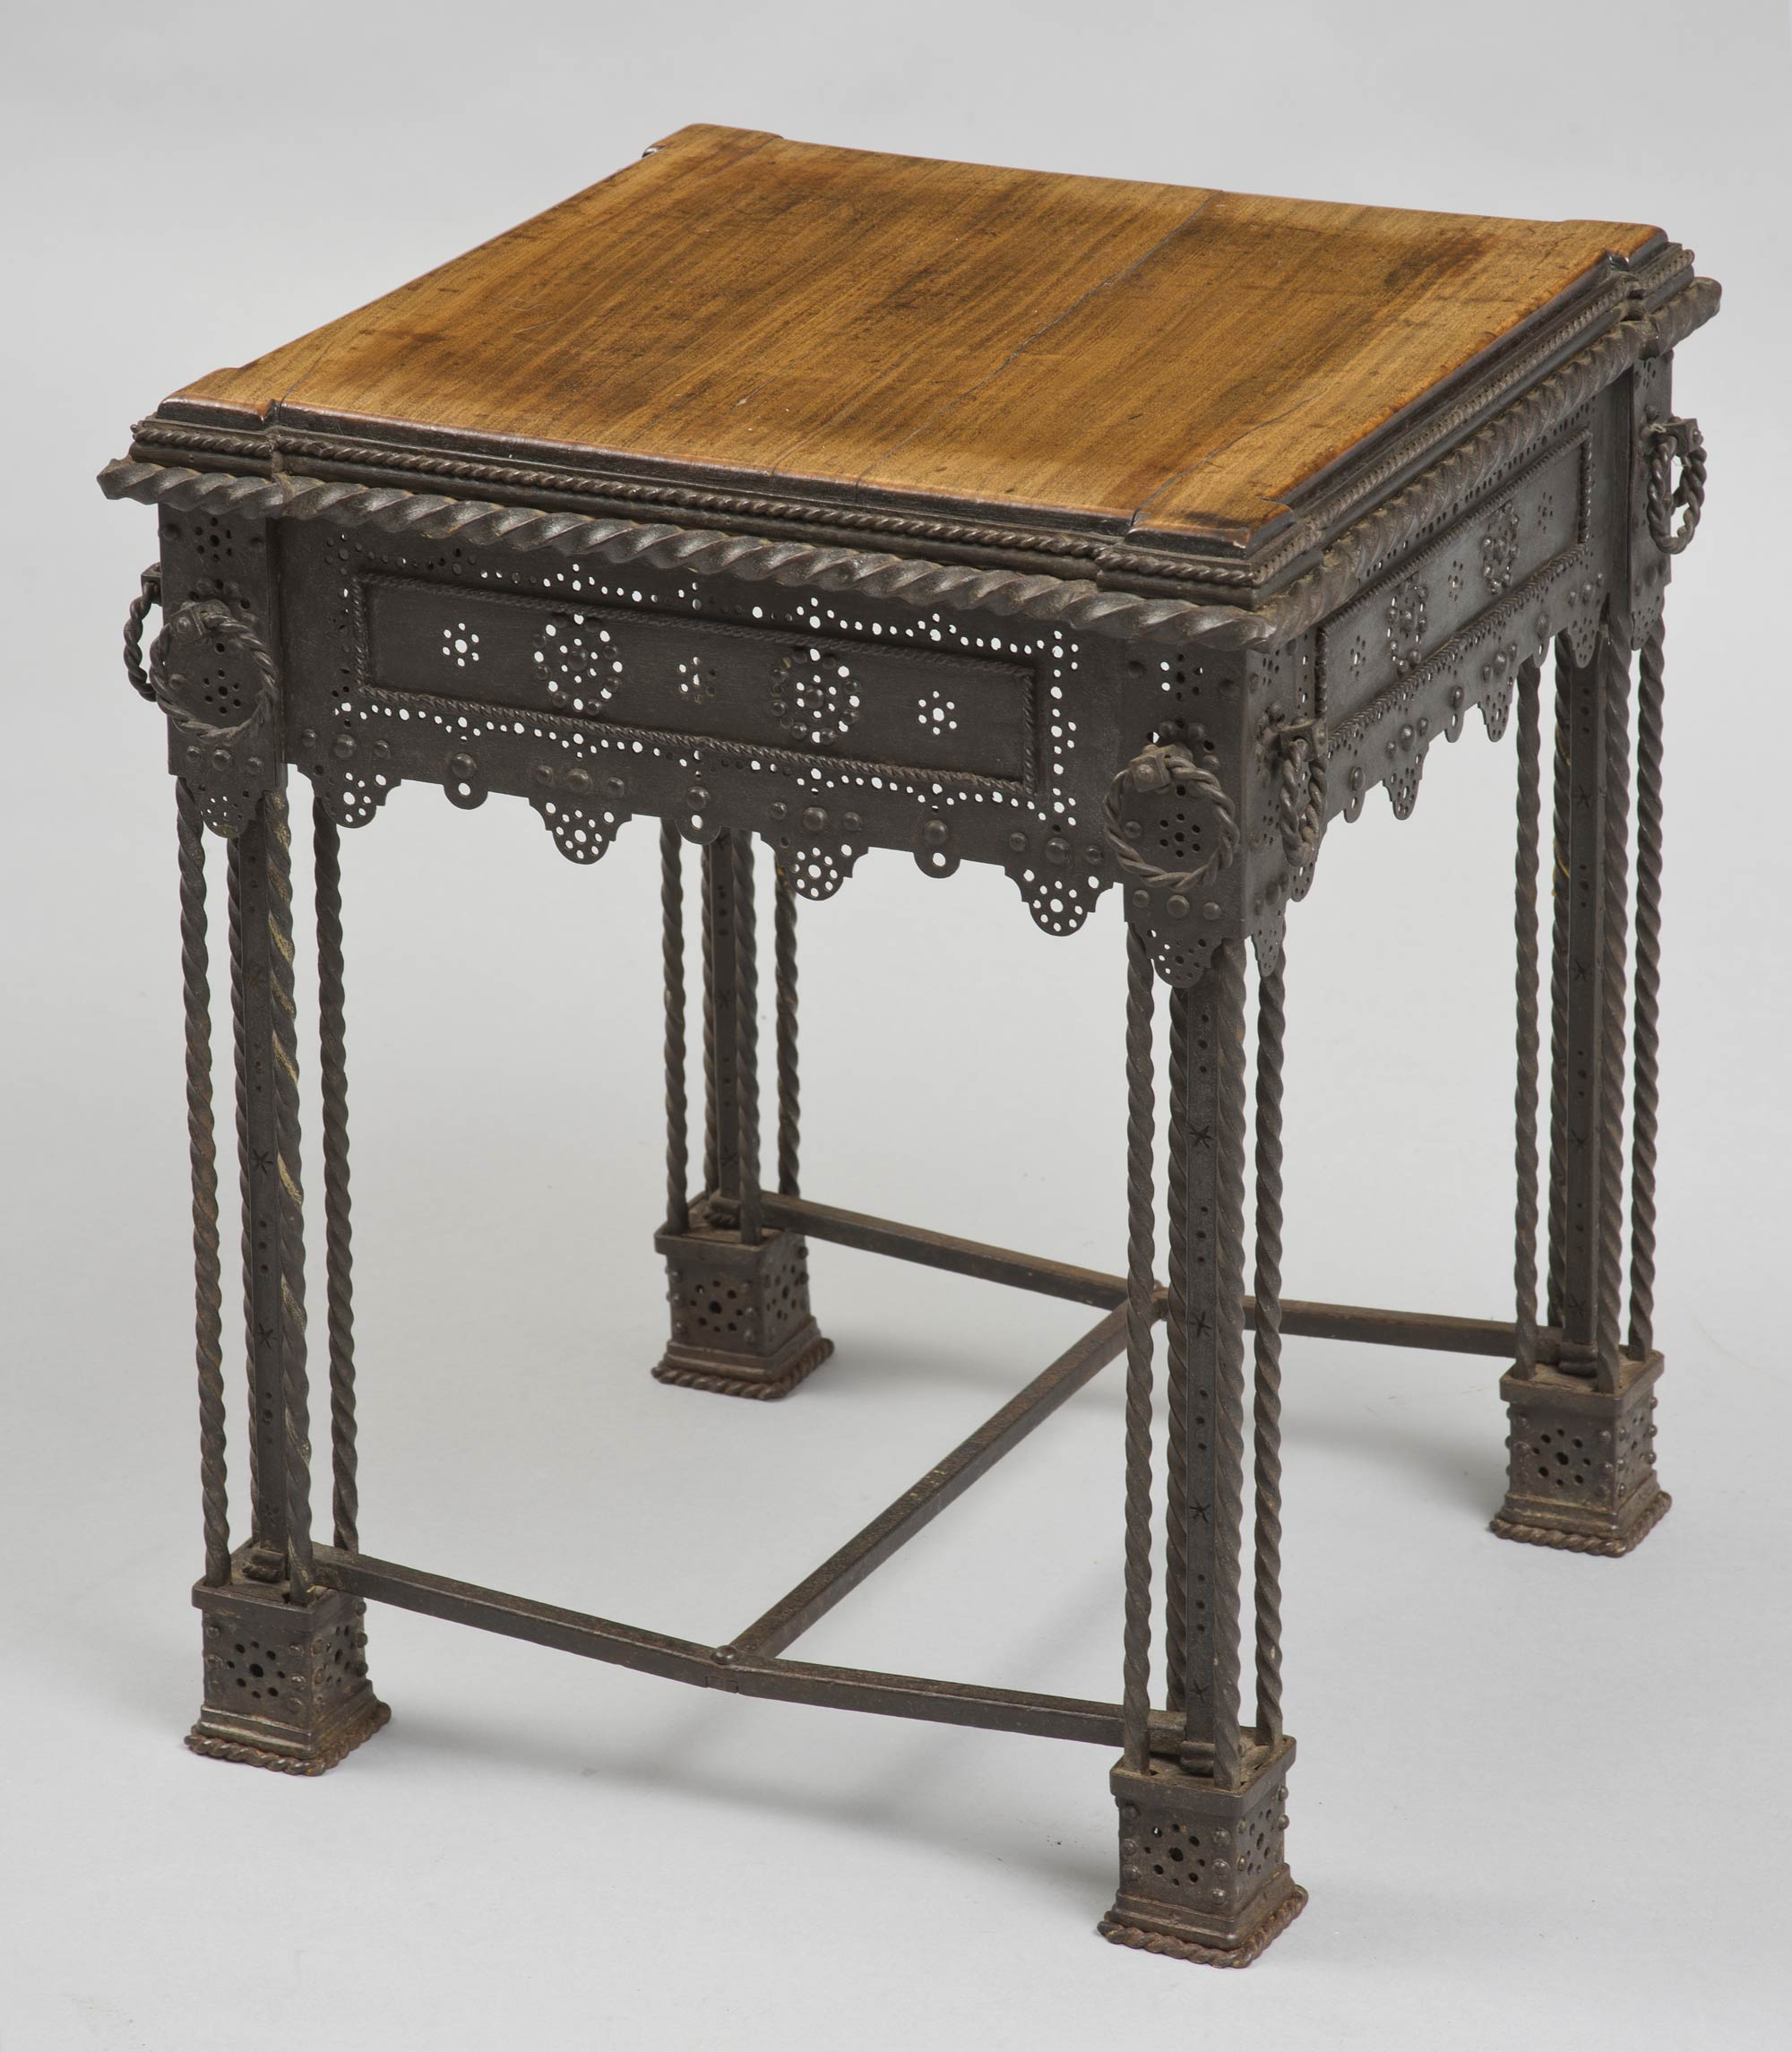 187 Product 187 Iron And Wood Low Table